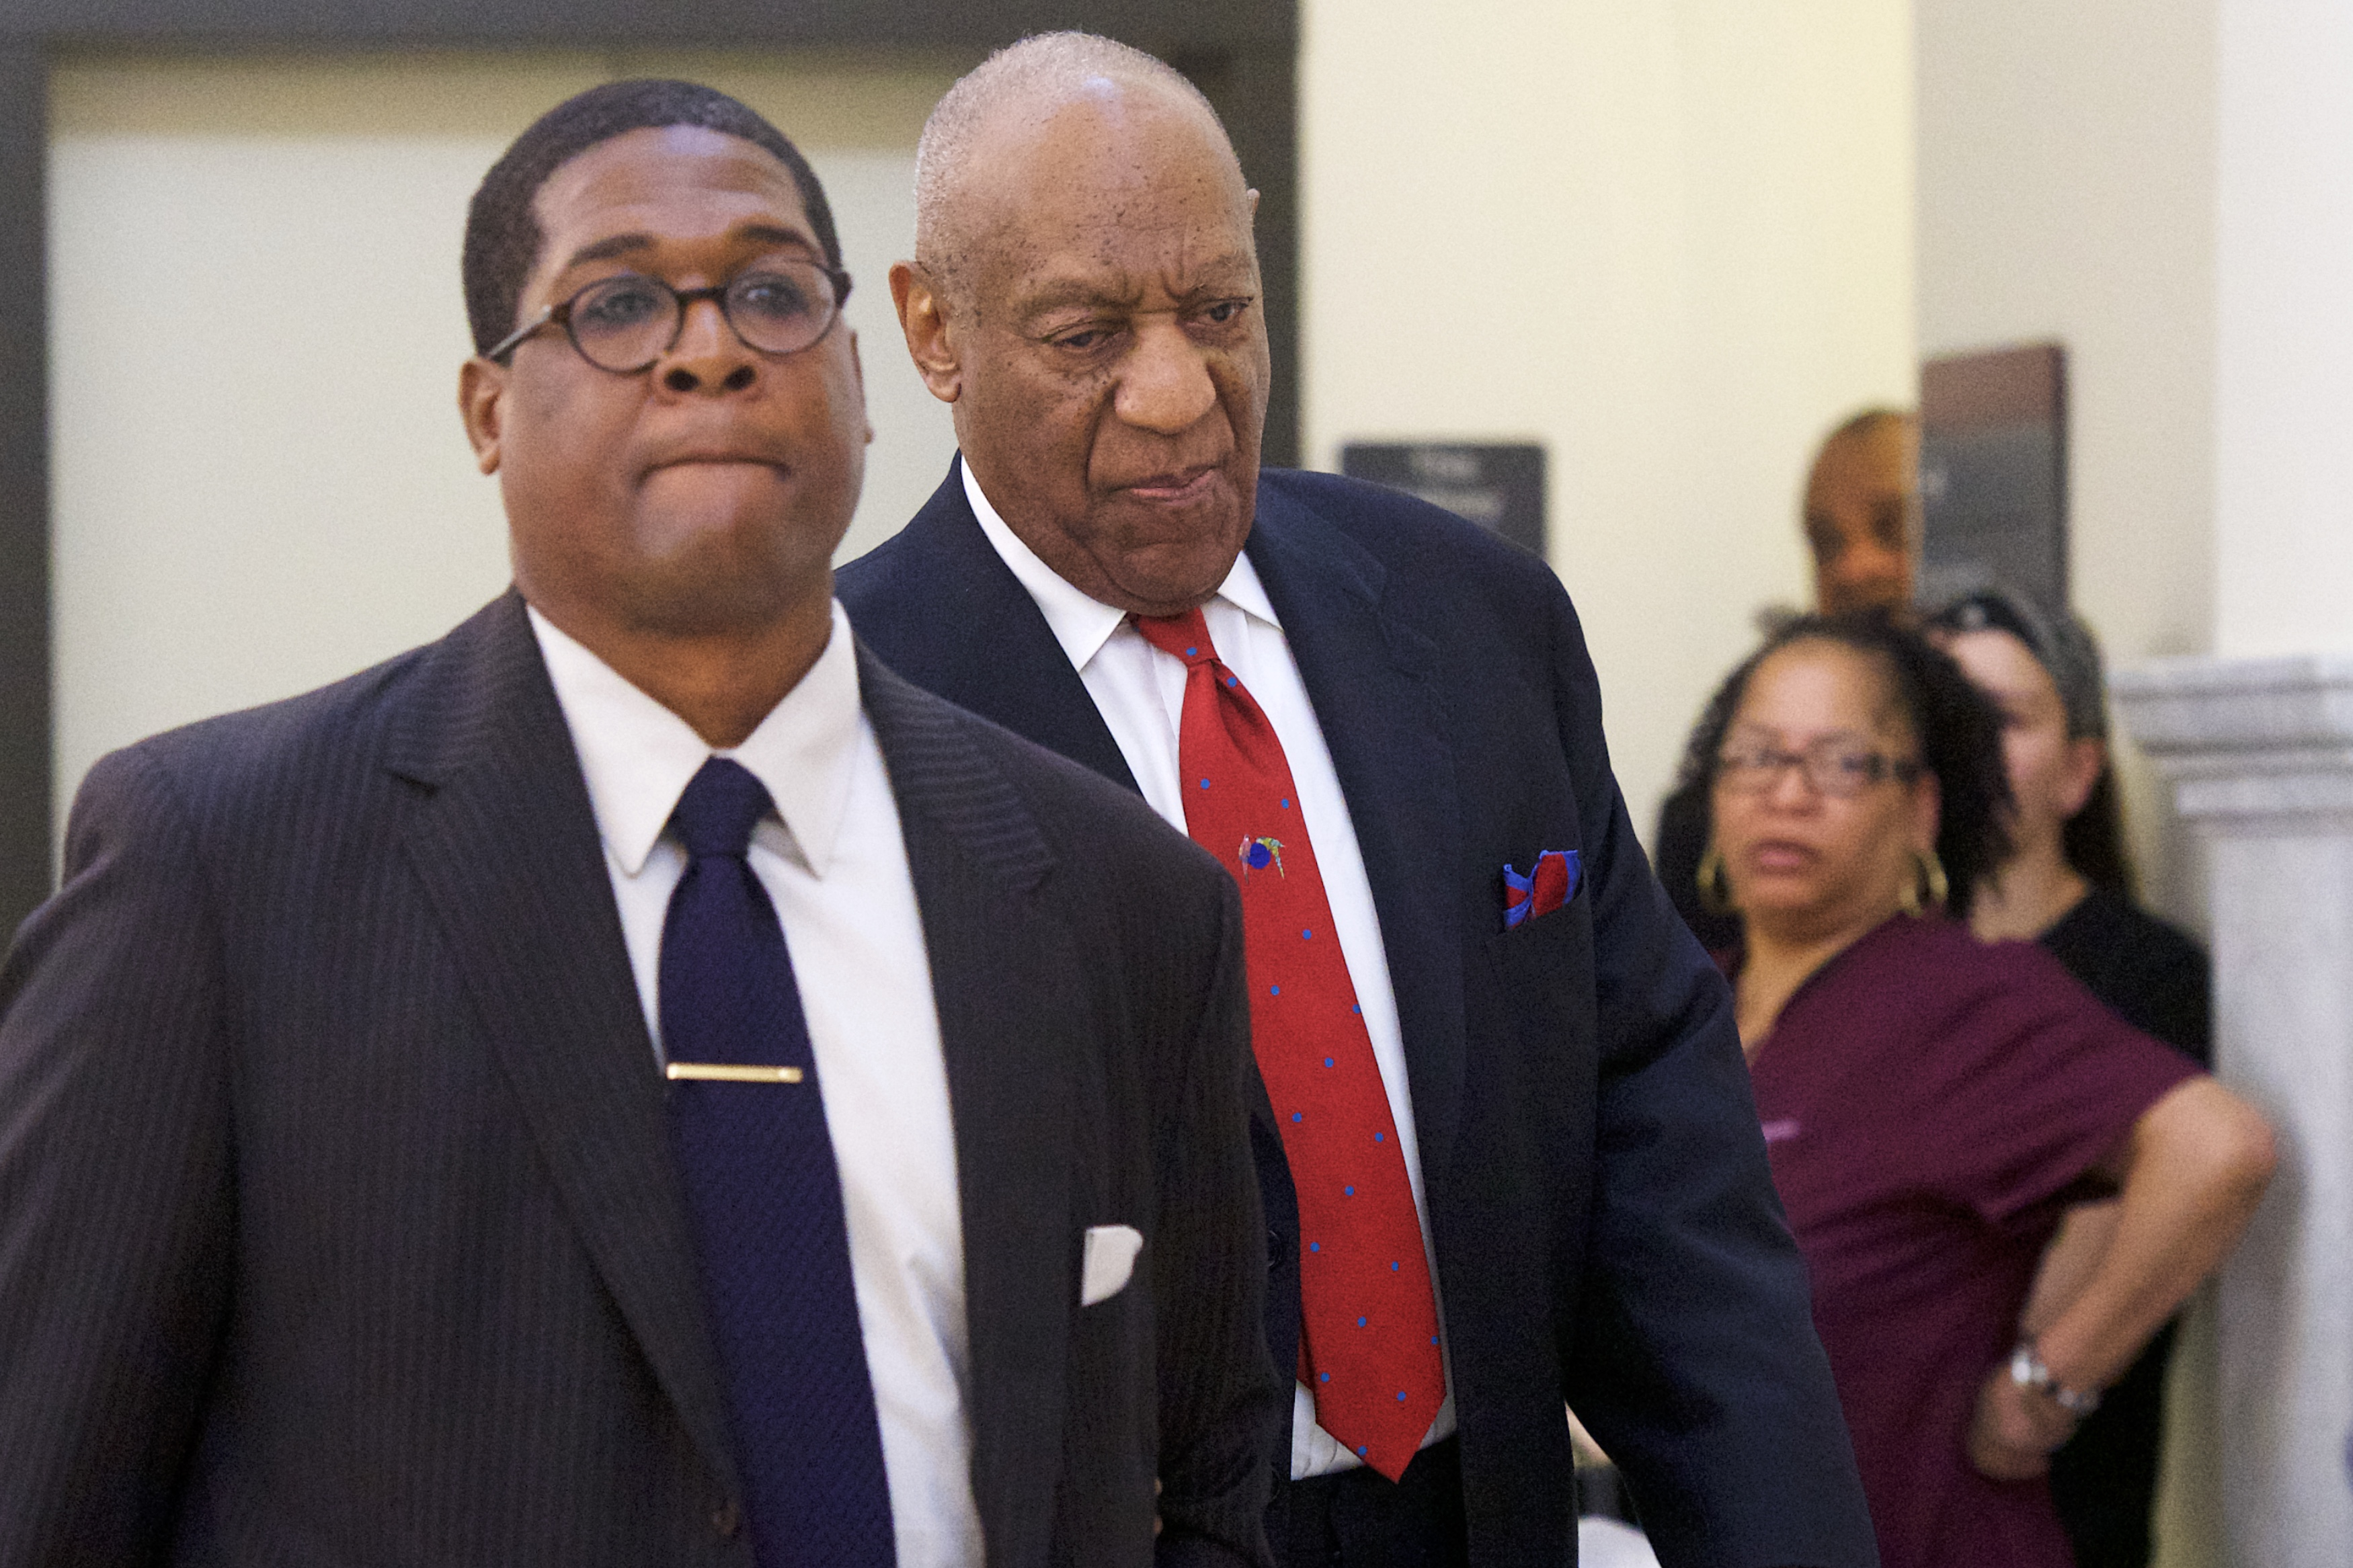 Bill Cosby (C) walks through the Montgomery County Courthouse with his publicist, Andrew Wyatt, after being found guilty on all counts in his sexual assault retrial on April 26, 2018 in Norristown, Pennsylvania. Cosby was found guilty on all accounts after a former Temple University employee alleges that the entertainer drugged and molested her in 2004 at his home in suburban Philadelphia. More than 40 women have accused the 80 year old entertainer of sexual assault.